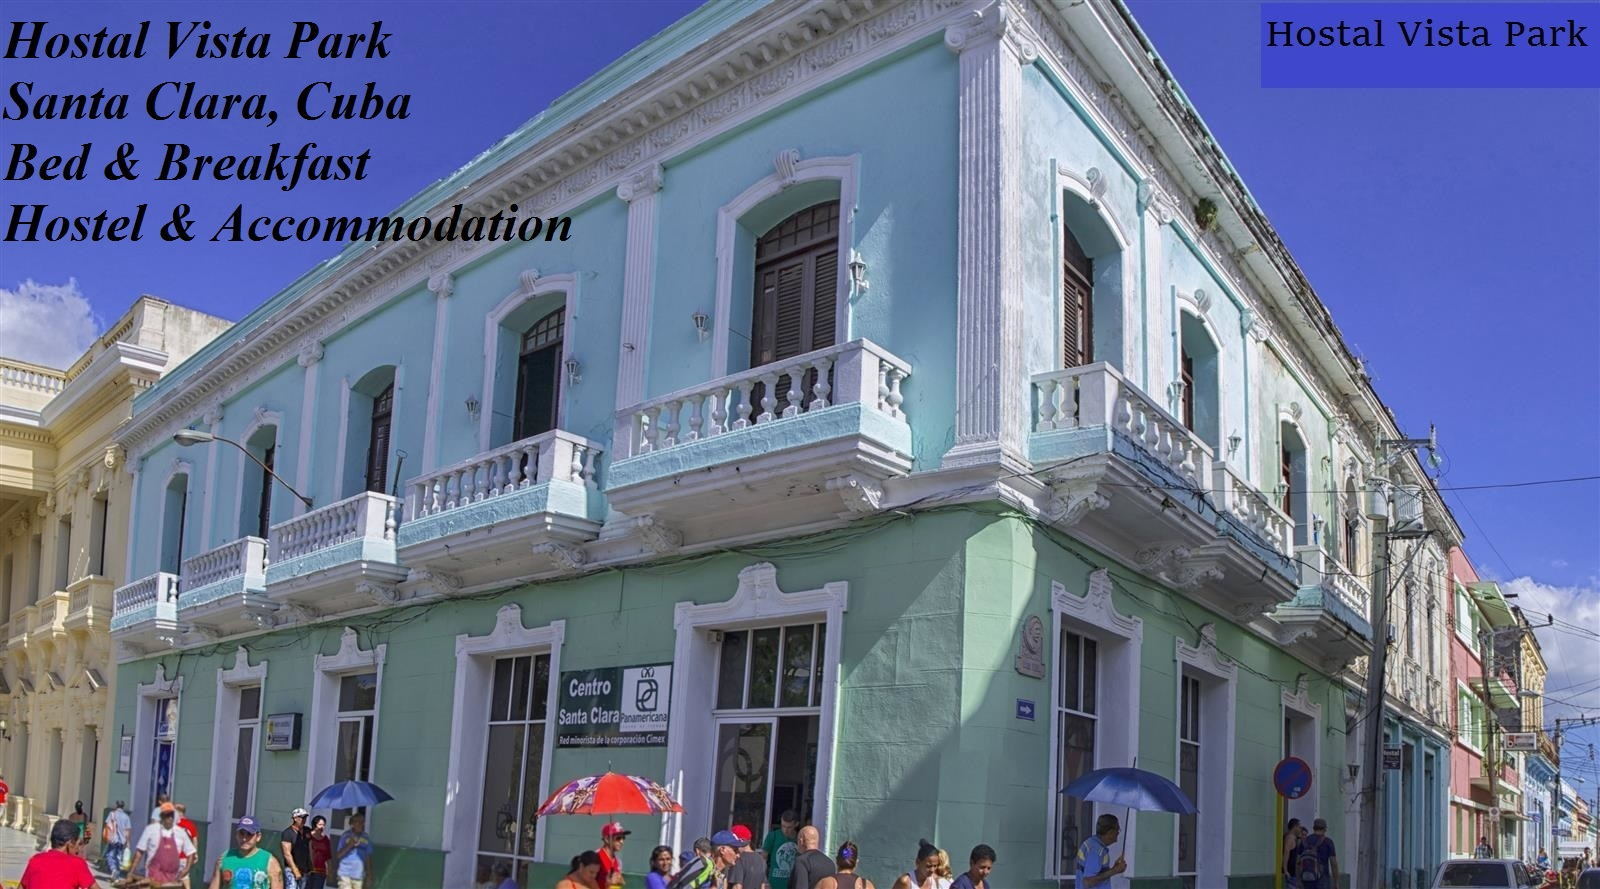 Hostal Vista Park, Santa Clara, Cuba, Bed and Breakfast, Hostel and Accommodation